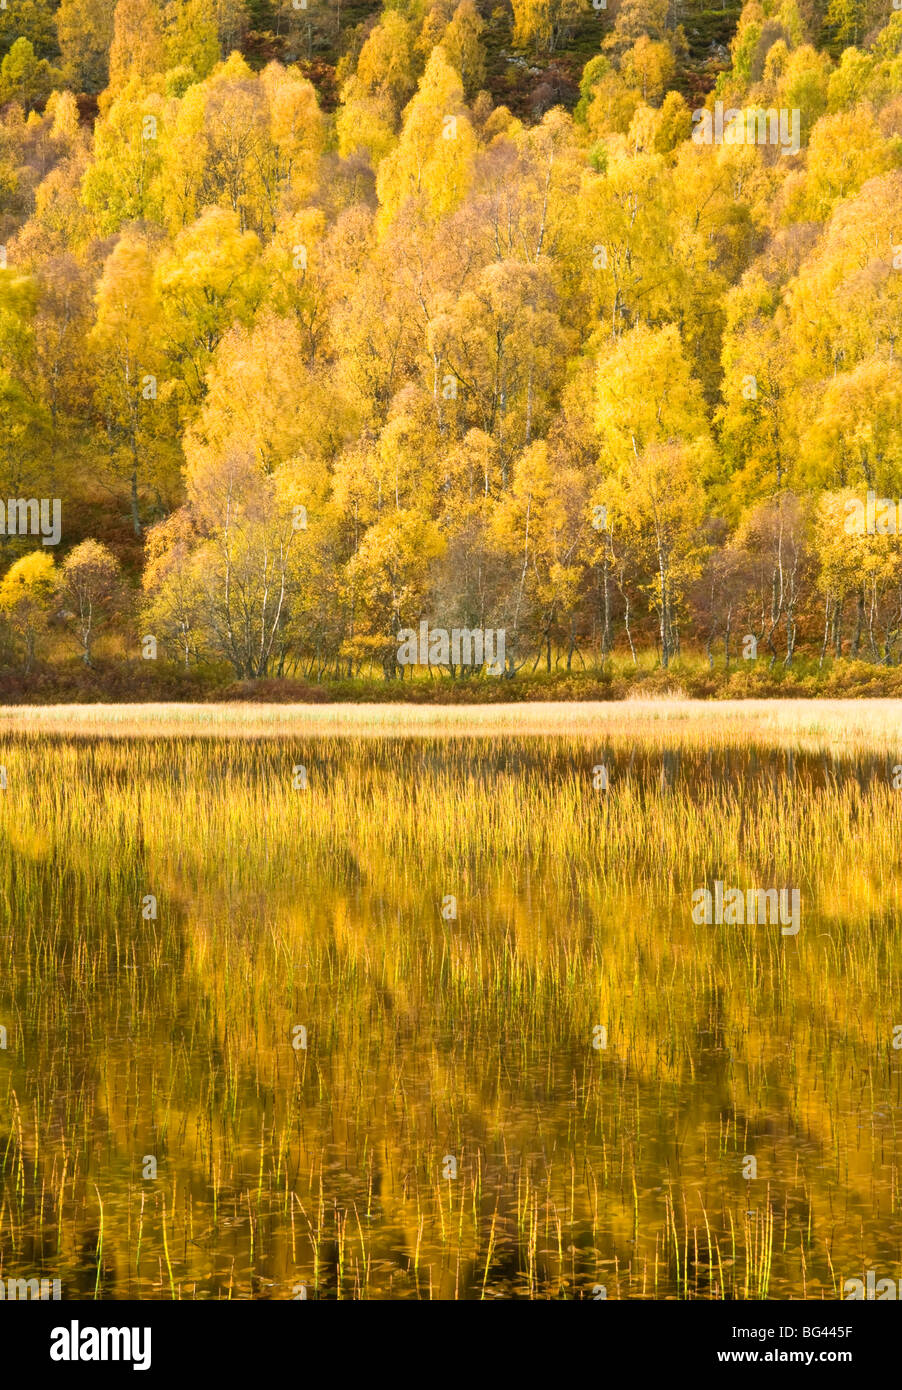 Loch reflections, Cairngorms National Park, Highlands, Scotland, UK - Stock Image